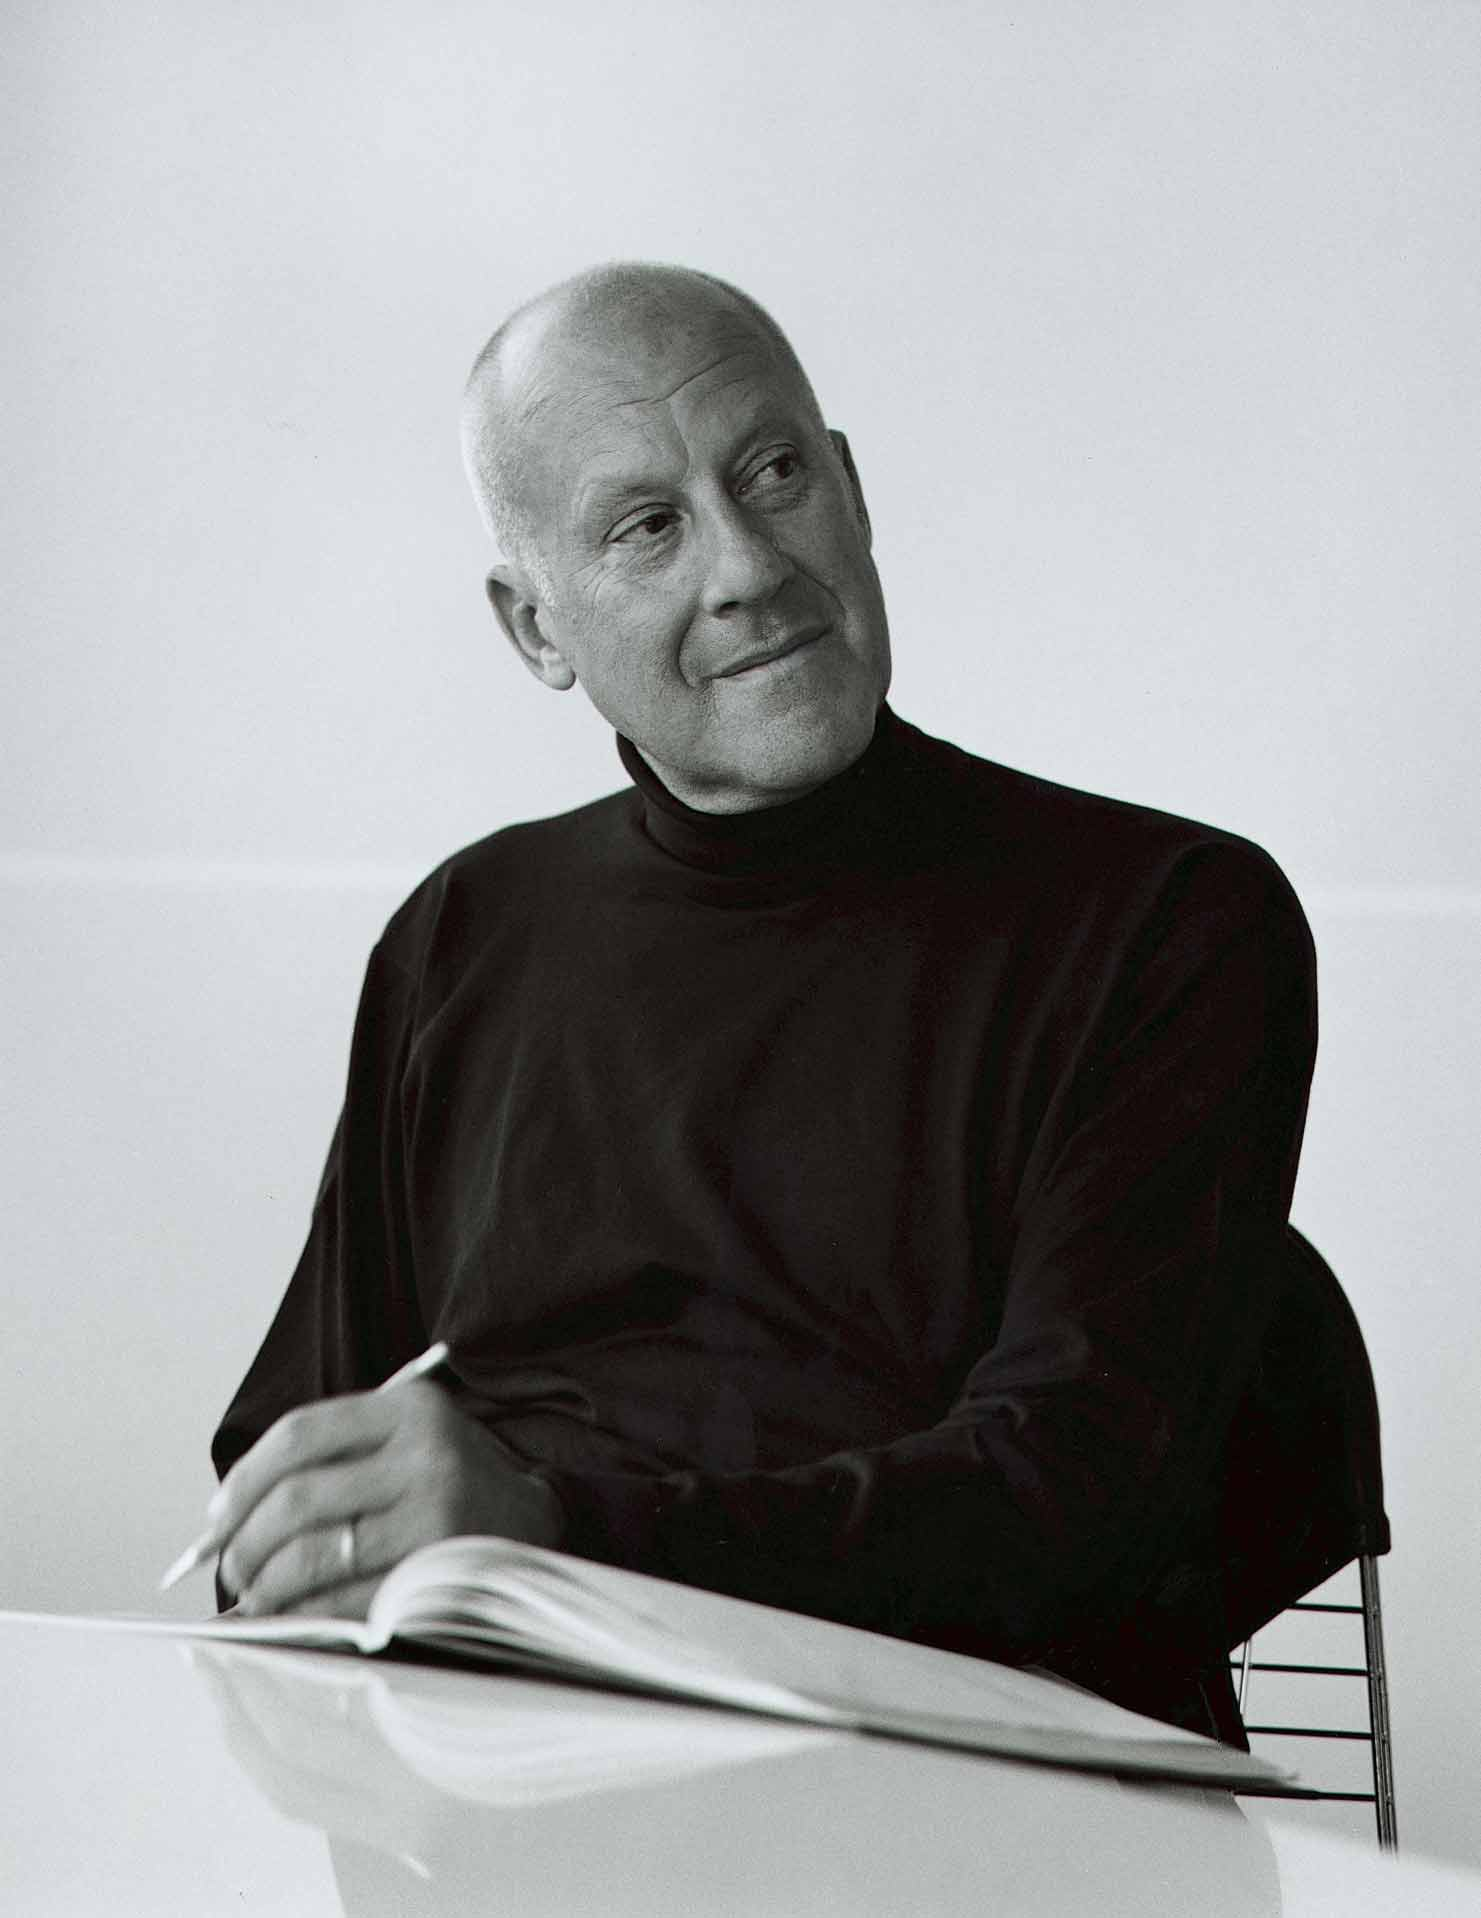 The architect Norman Foster sits with pencil and sketch book in this black-and-white portrait, courtesy of GA/Yukio Futagawa.